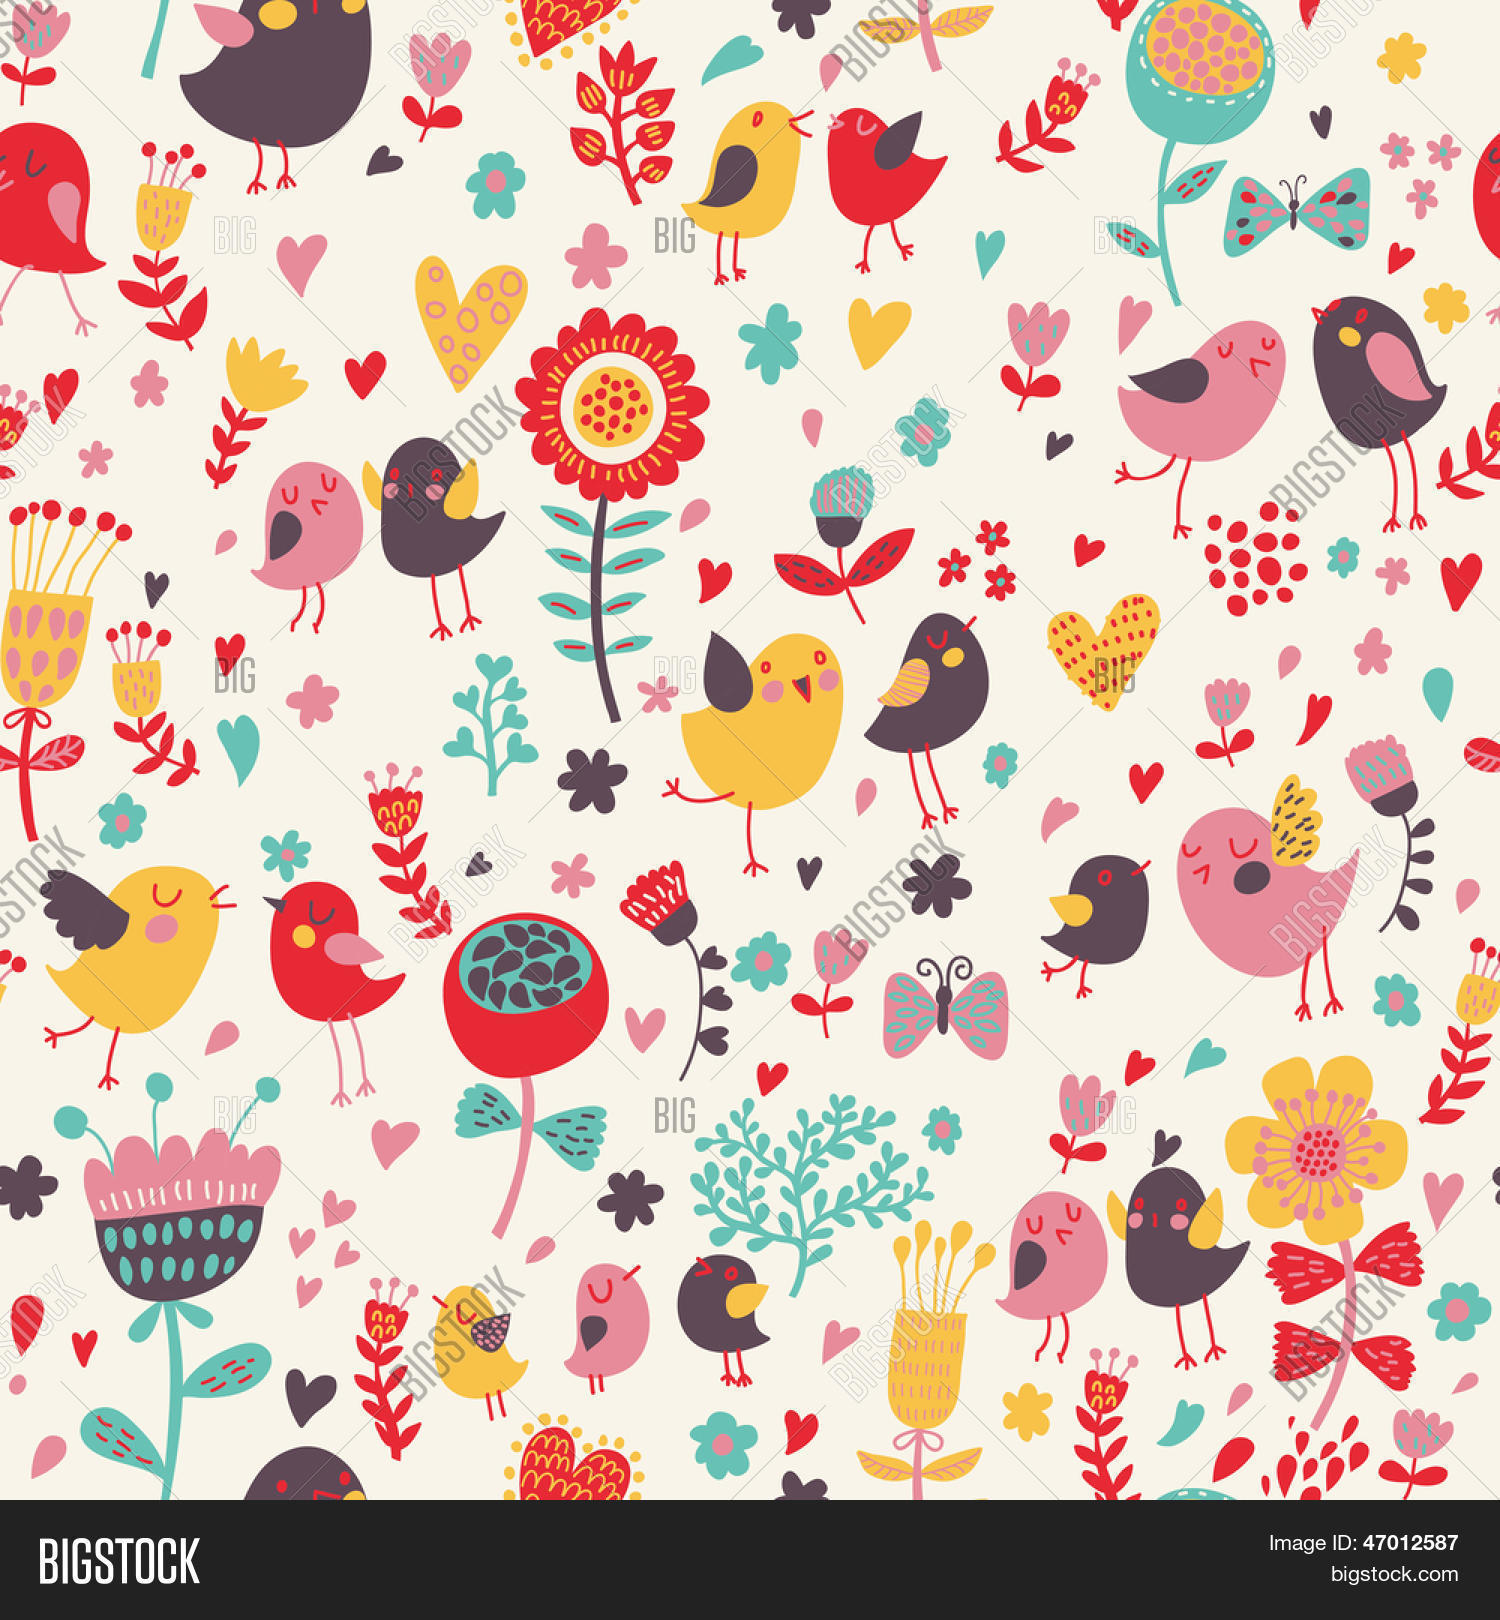 Romantic Floral Seamless Pattern With Cute Small Birds In The Garden Love